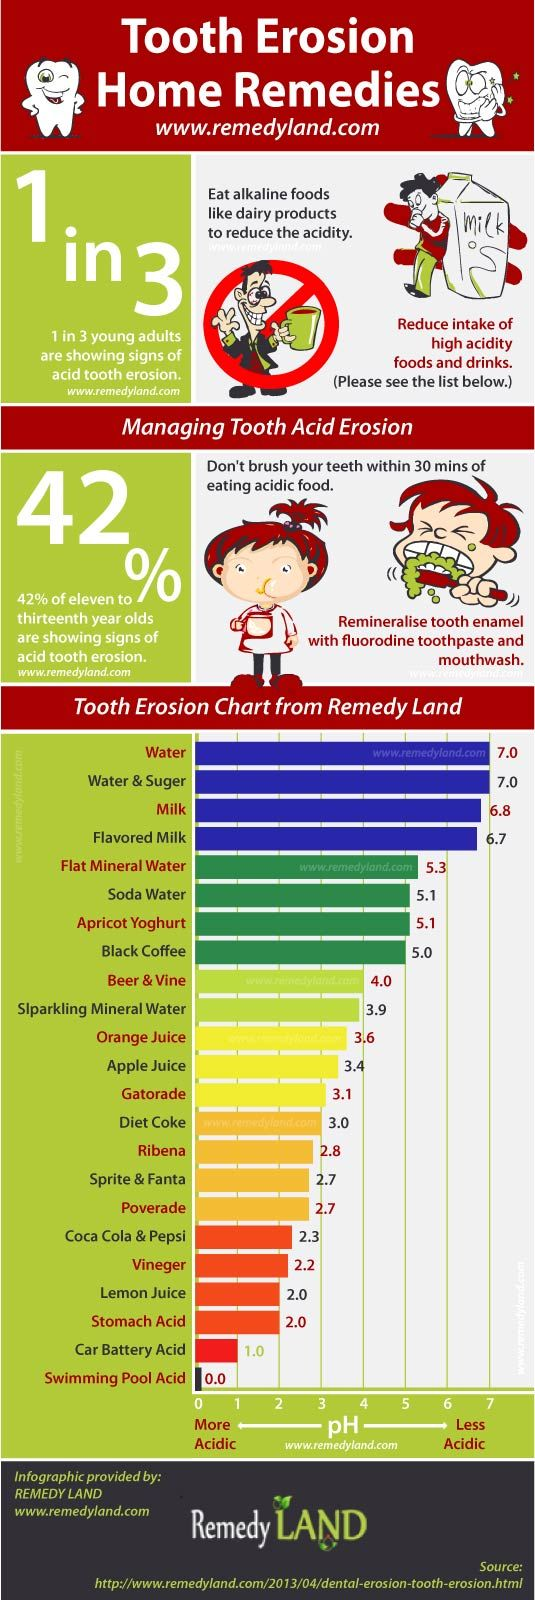 Dental erosion is a long term acid damage of all or section of a tooth. Tooth erosion treatment and remedy is based on the level of tooth wear.